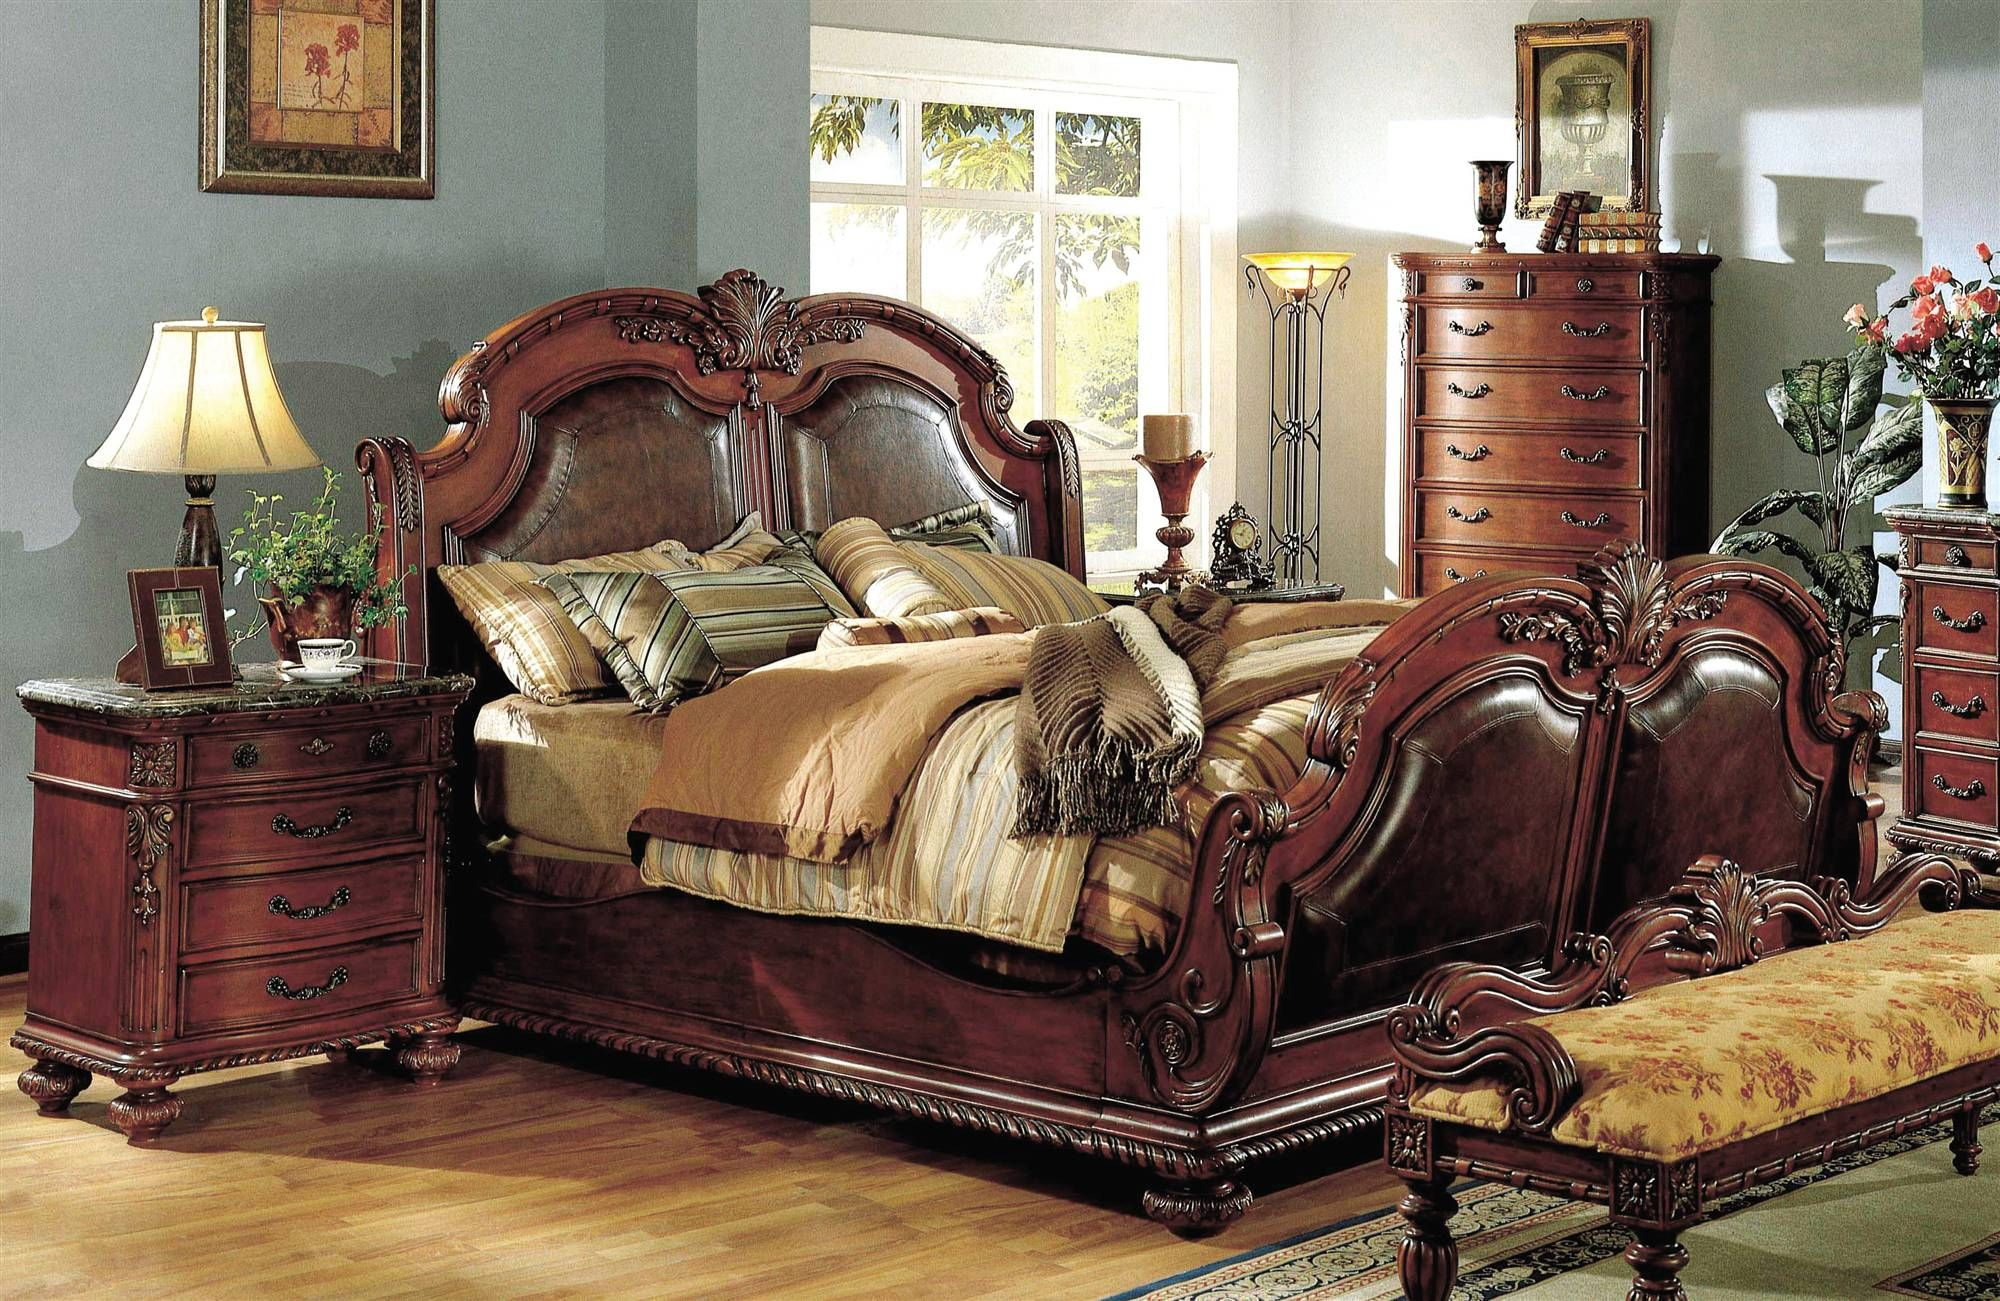 Victorian Bedroom Set Pic Www.furniturevisit.org